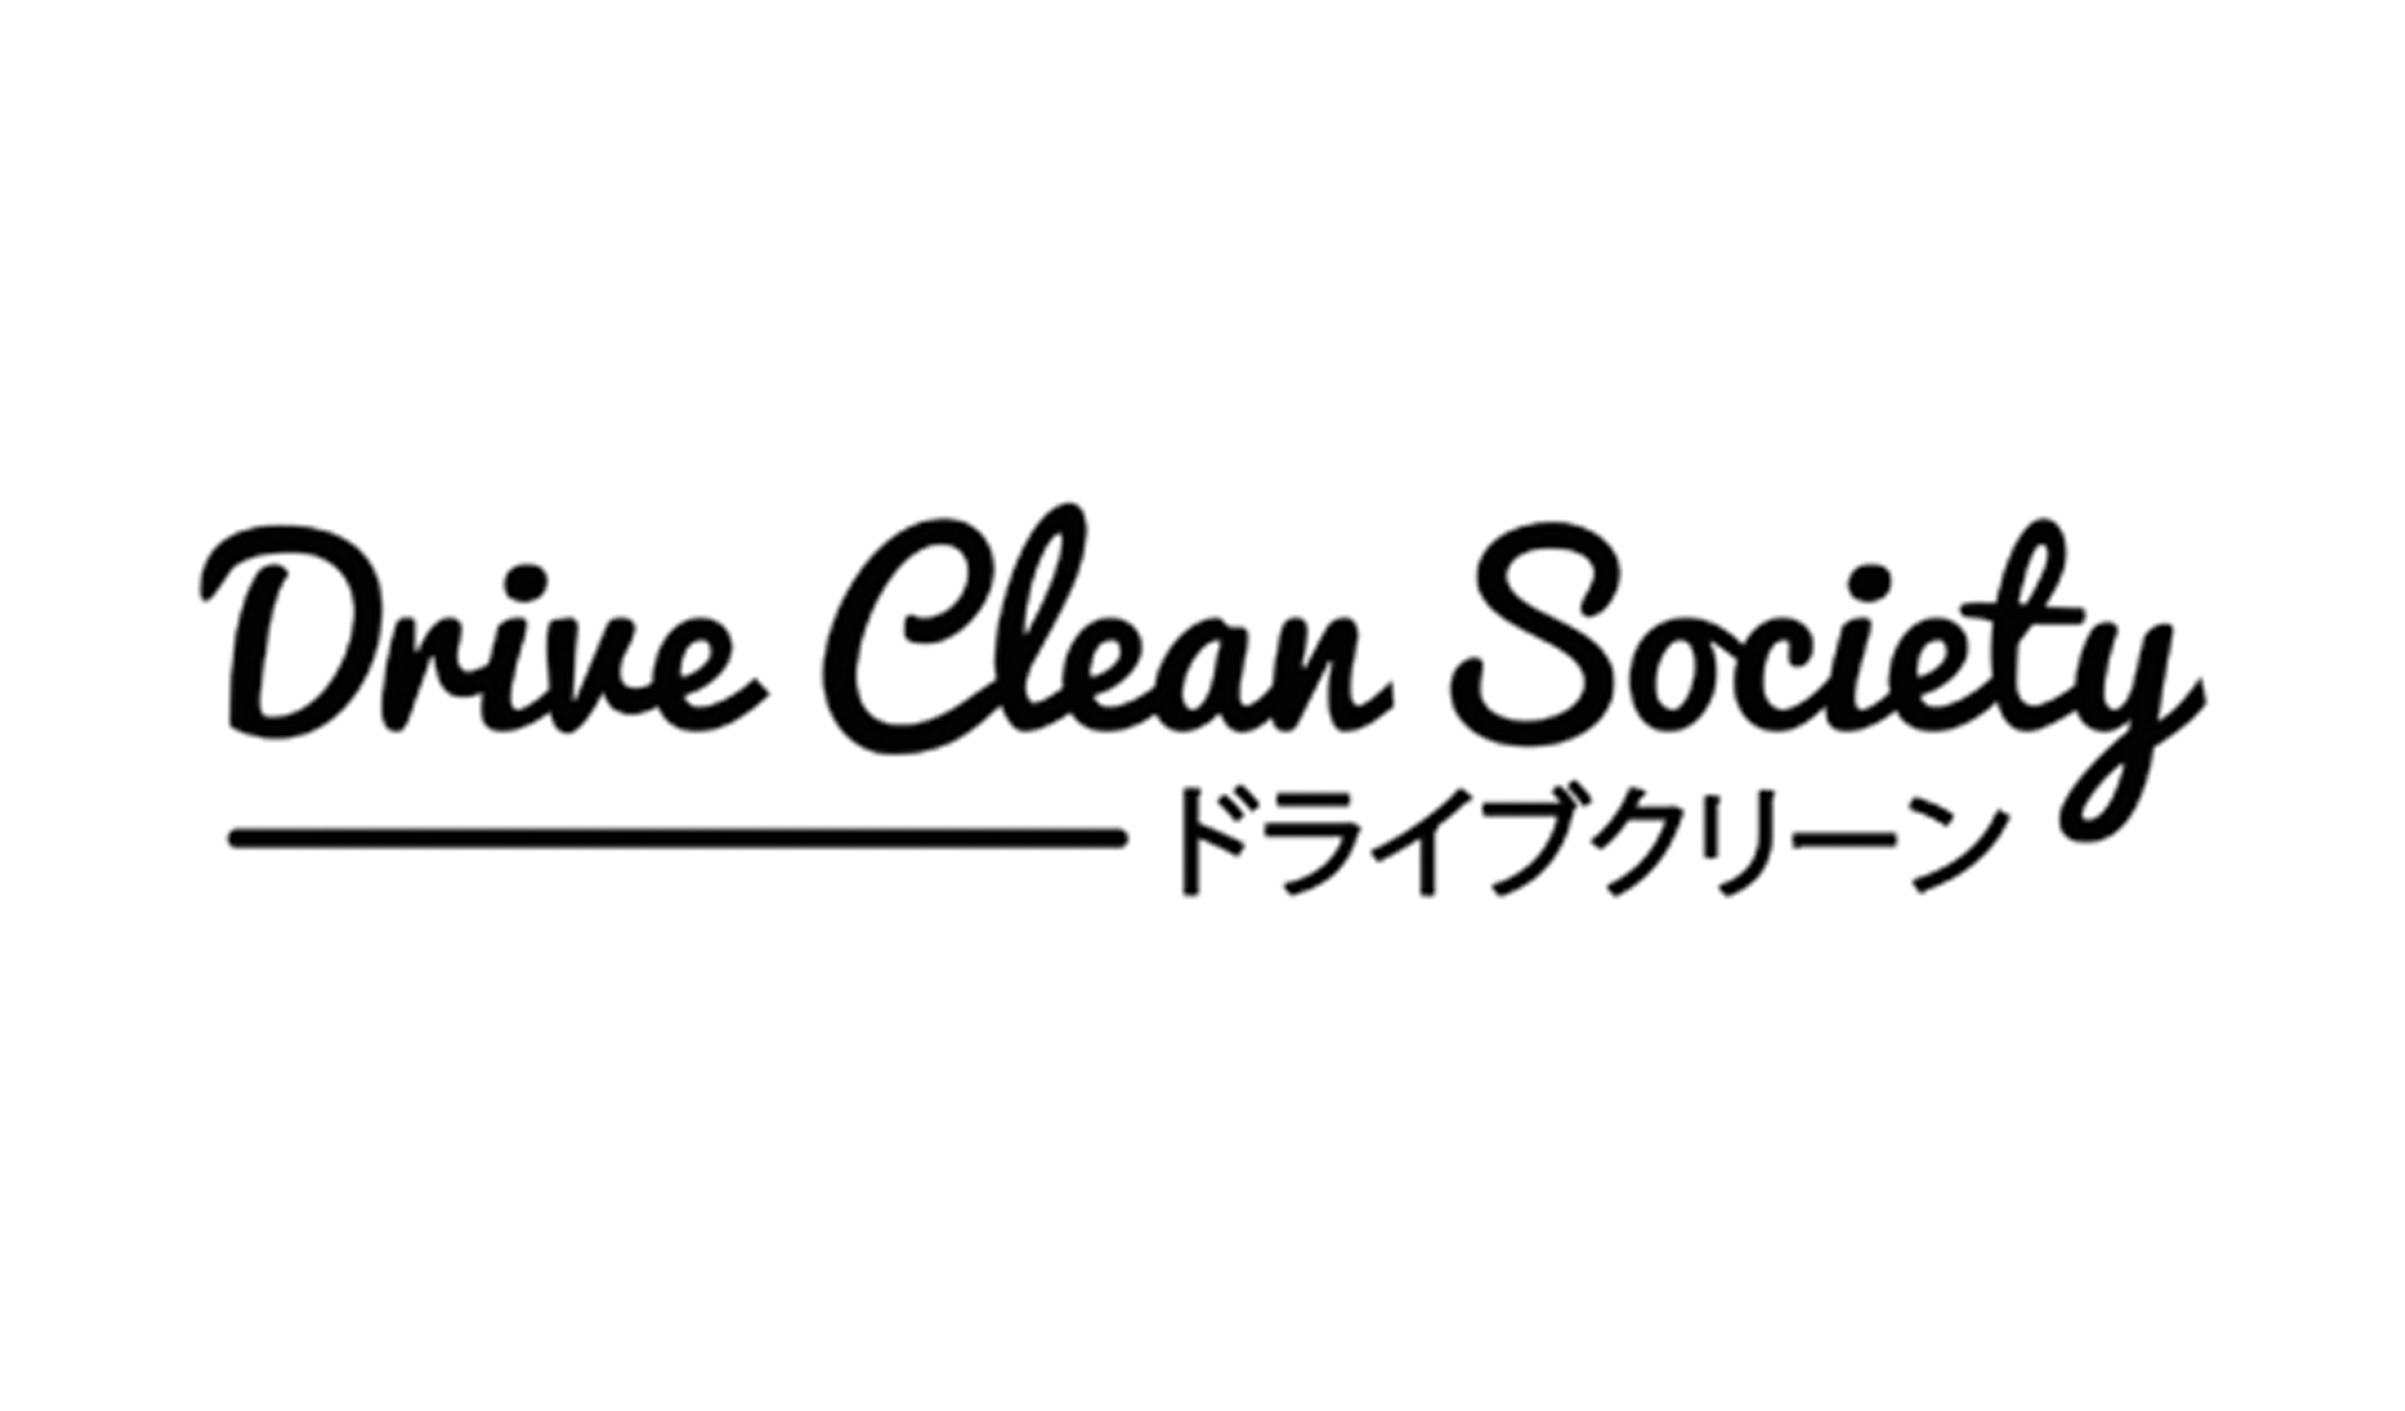 drive-clean-society